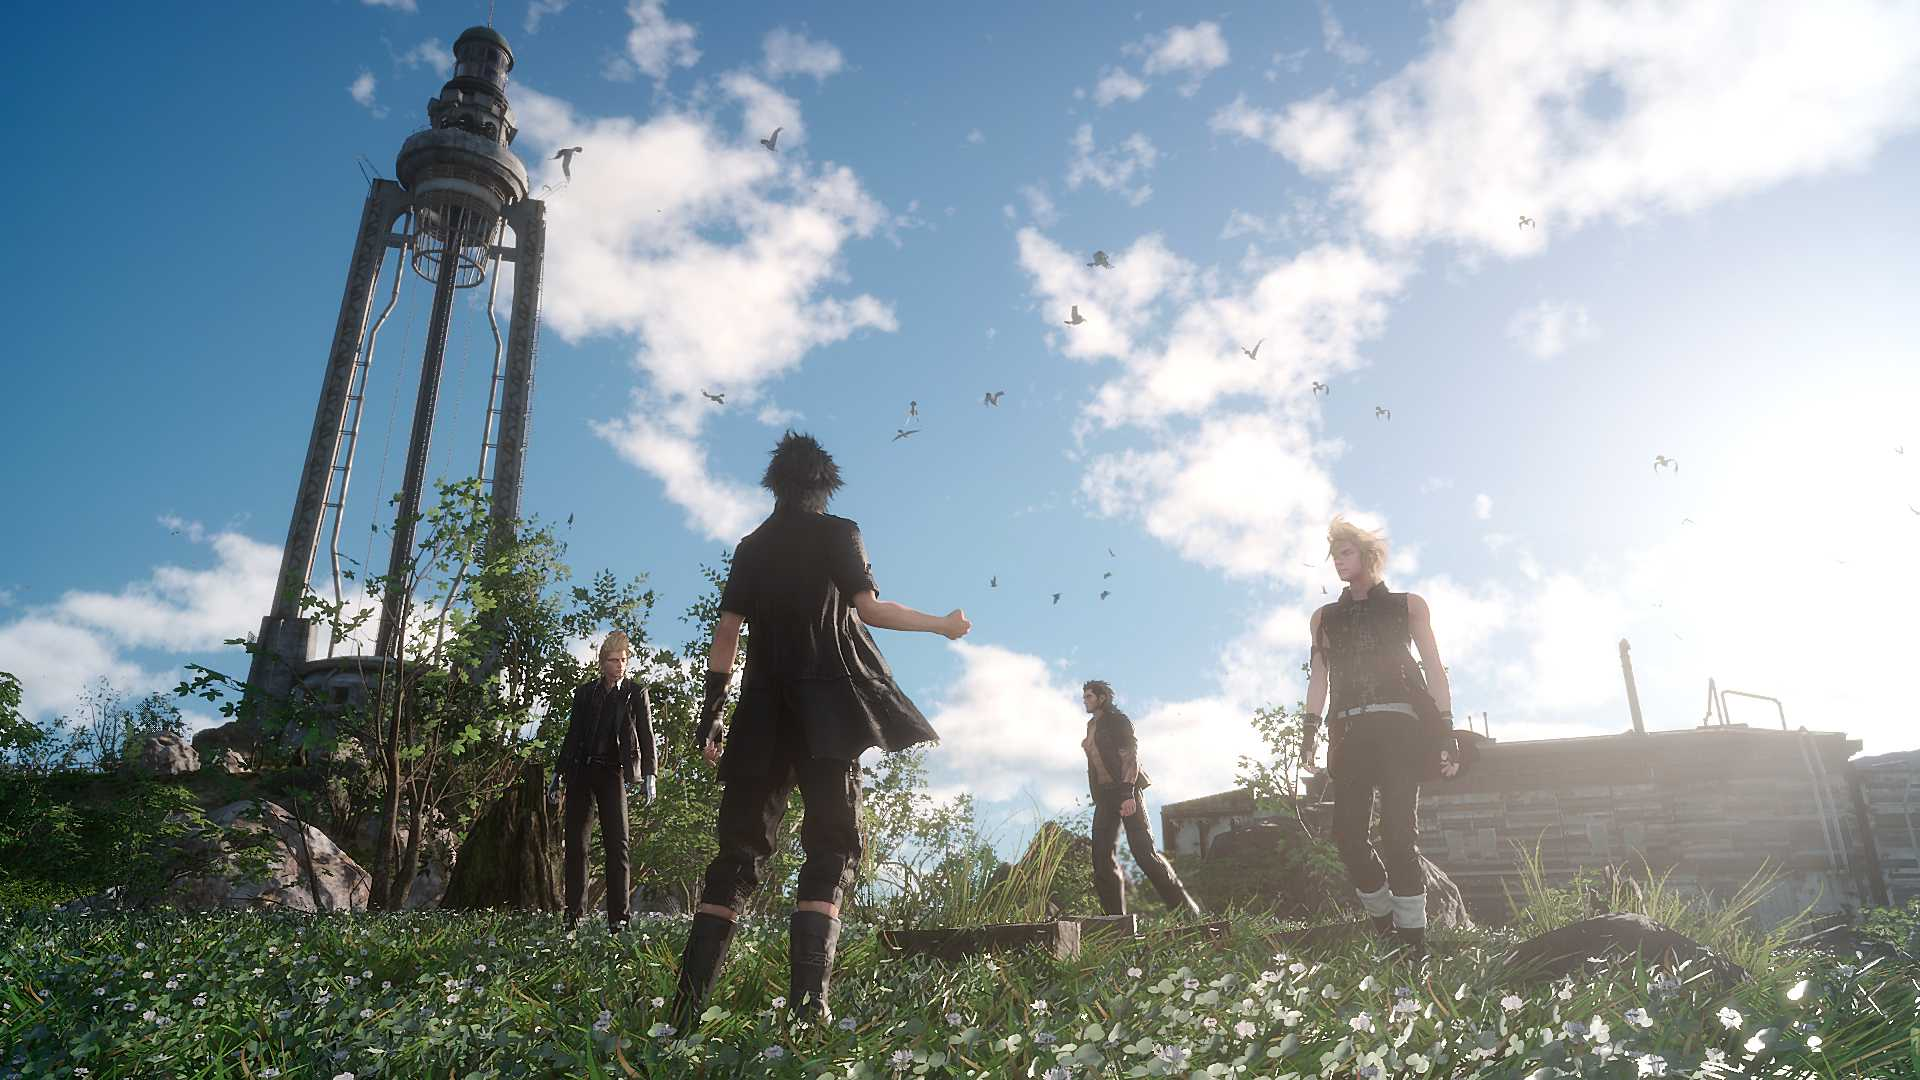 Ff15 compressed